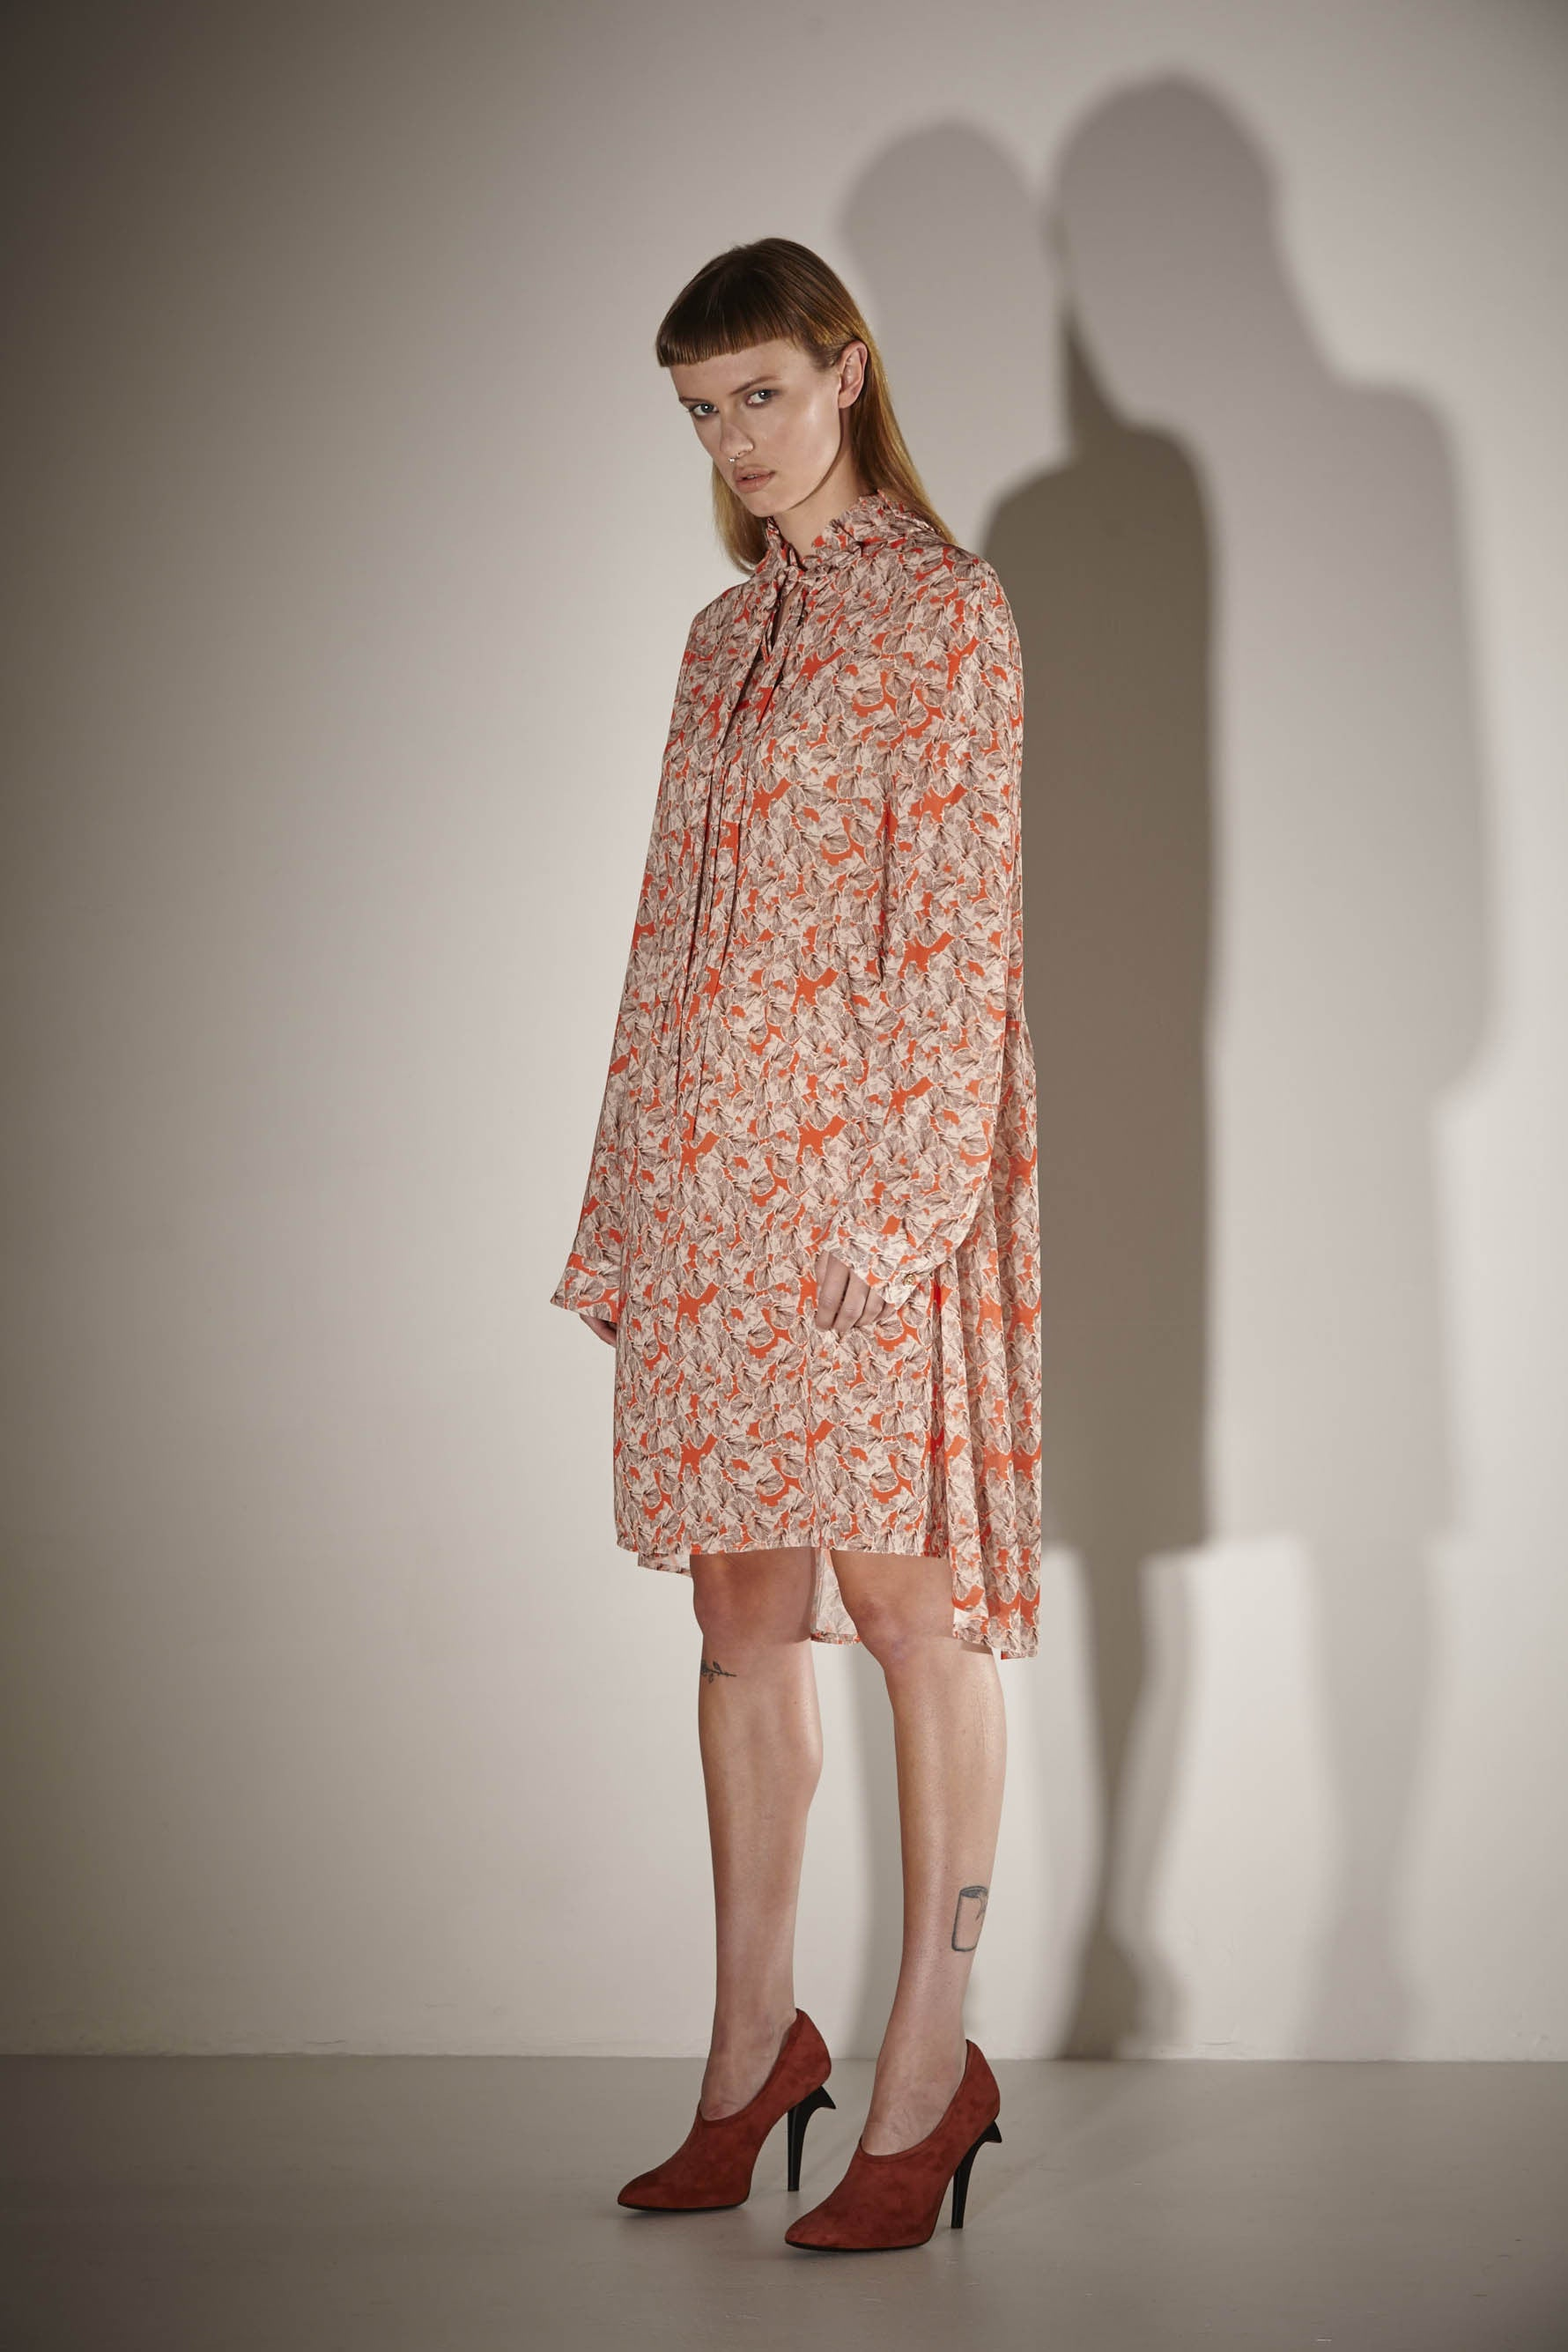 Ricochet NZ Fashion Designer Clothing SS17 Exclusive Pop Iris Print Oversize Frill Neck Artista Shirt Dress Made in NZ